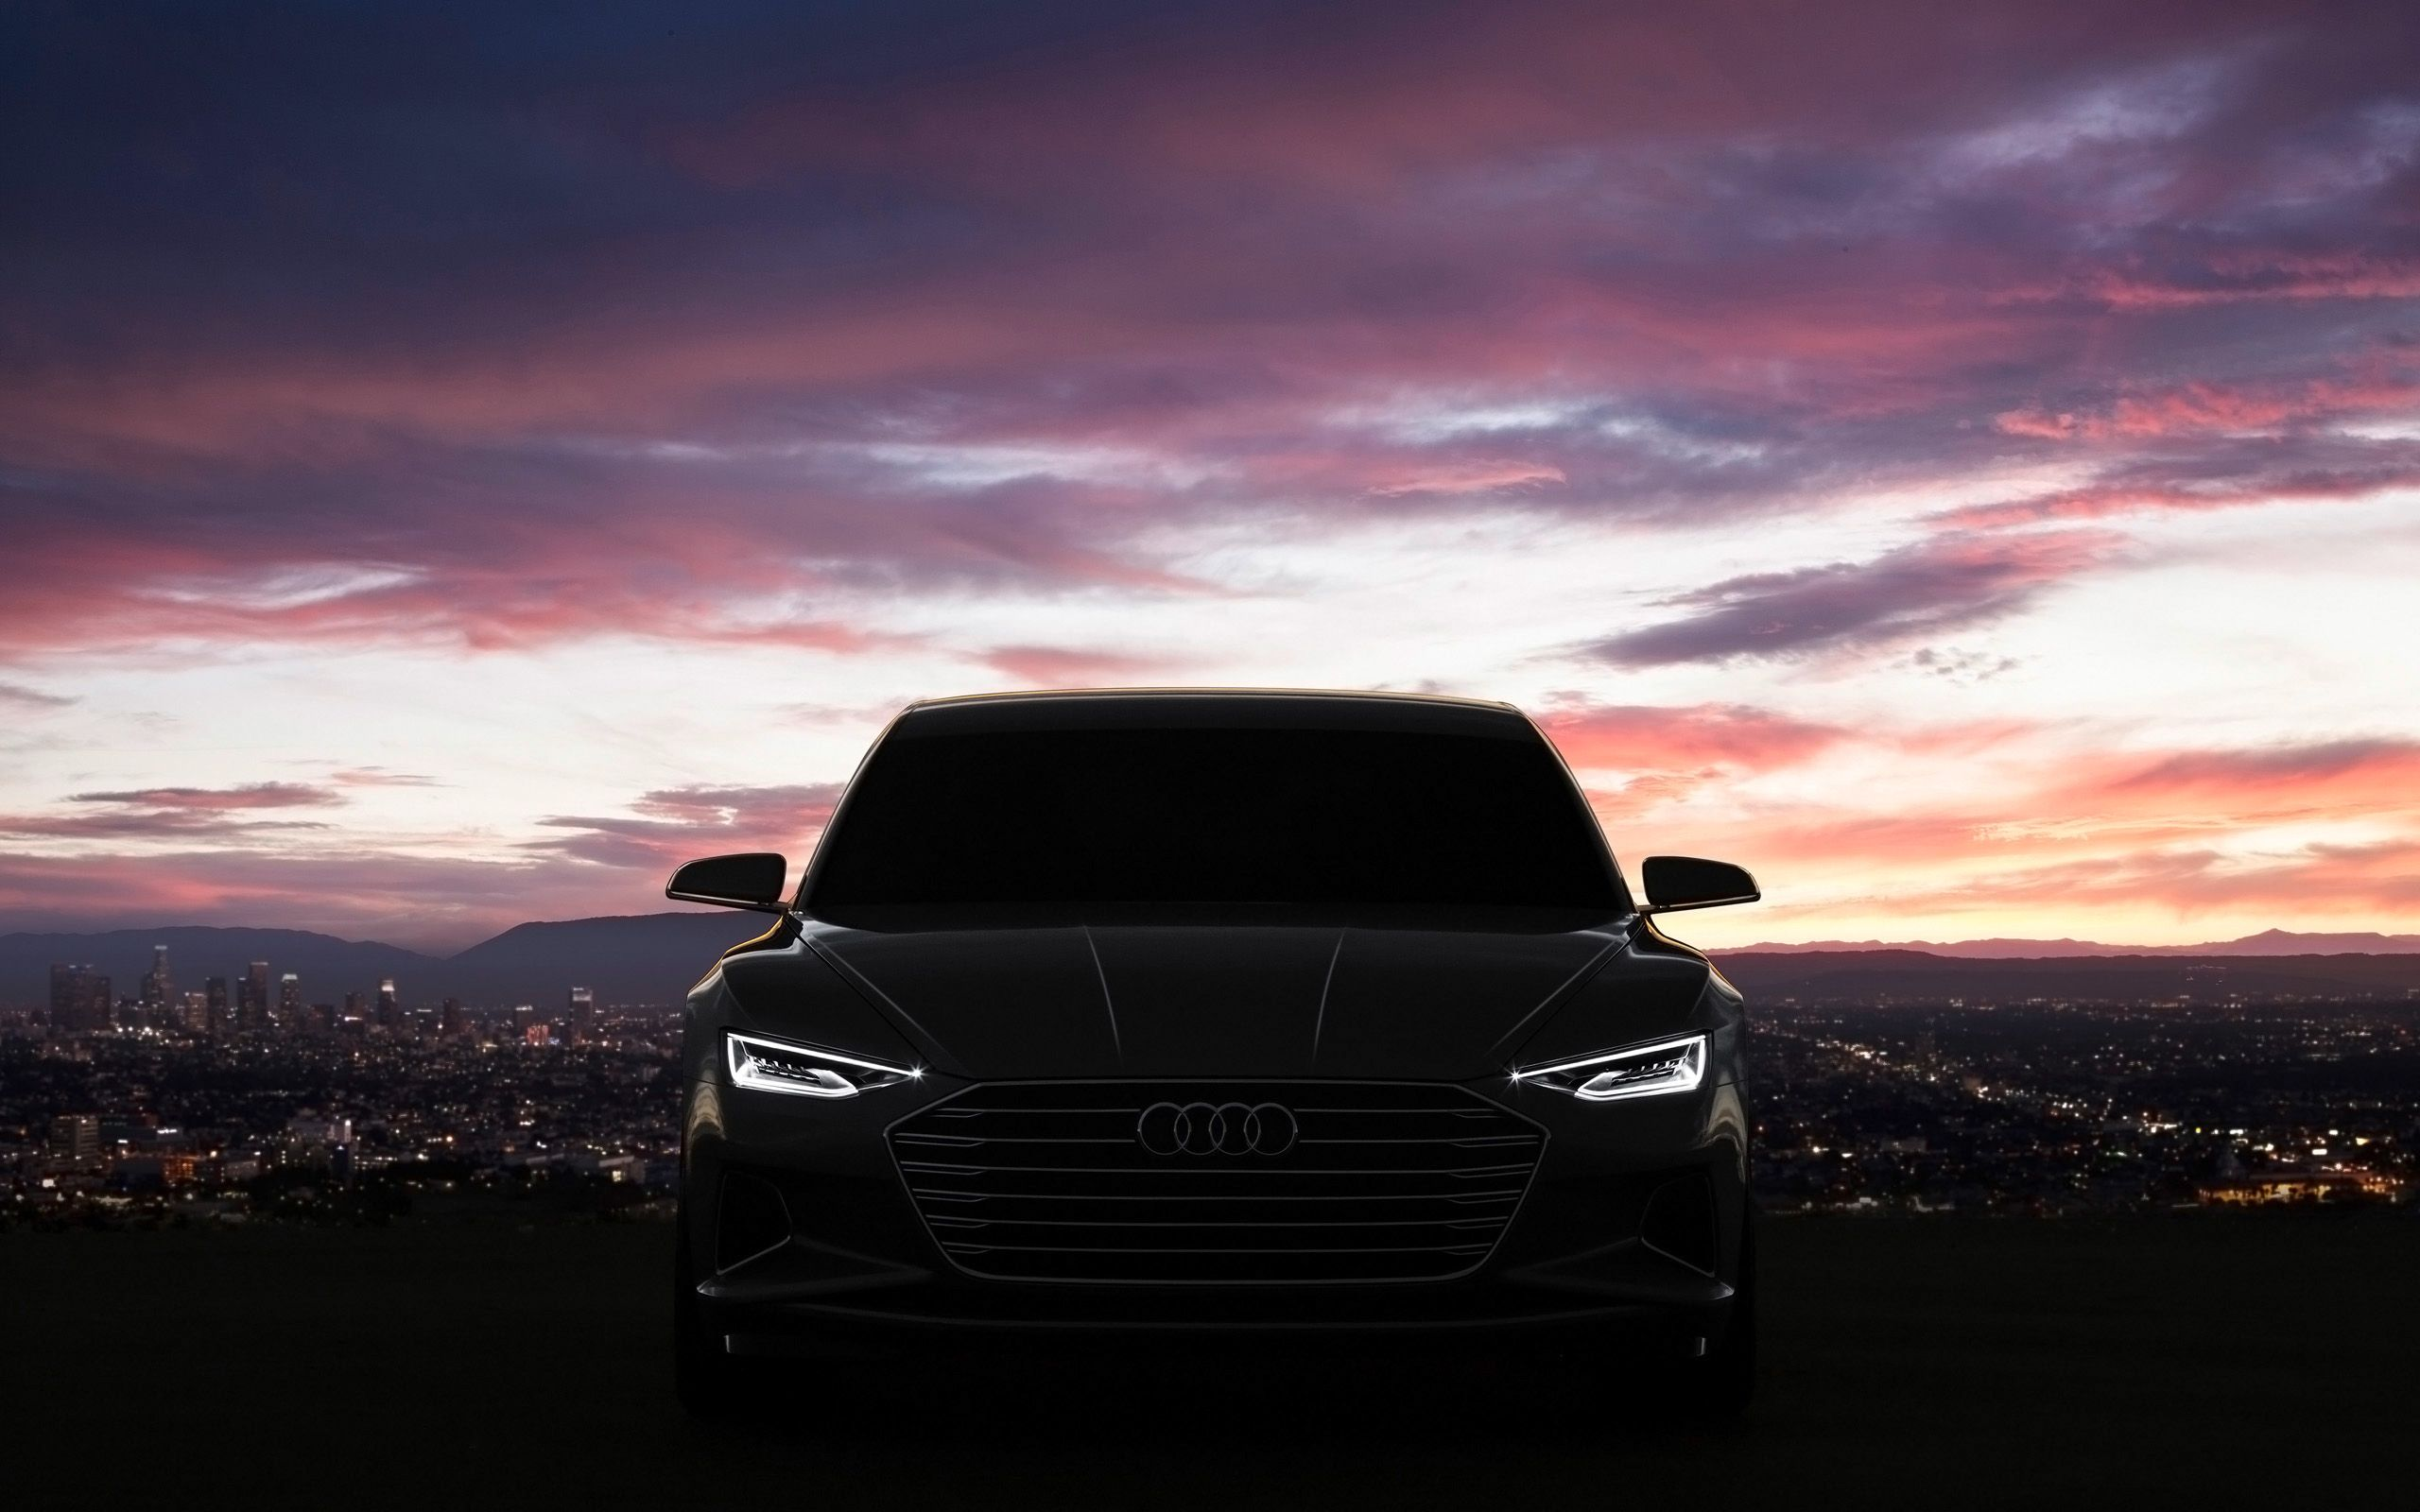 Audi Wallpaper Photo For Desktop Wallpaper 2560 x 1600 px